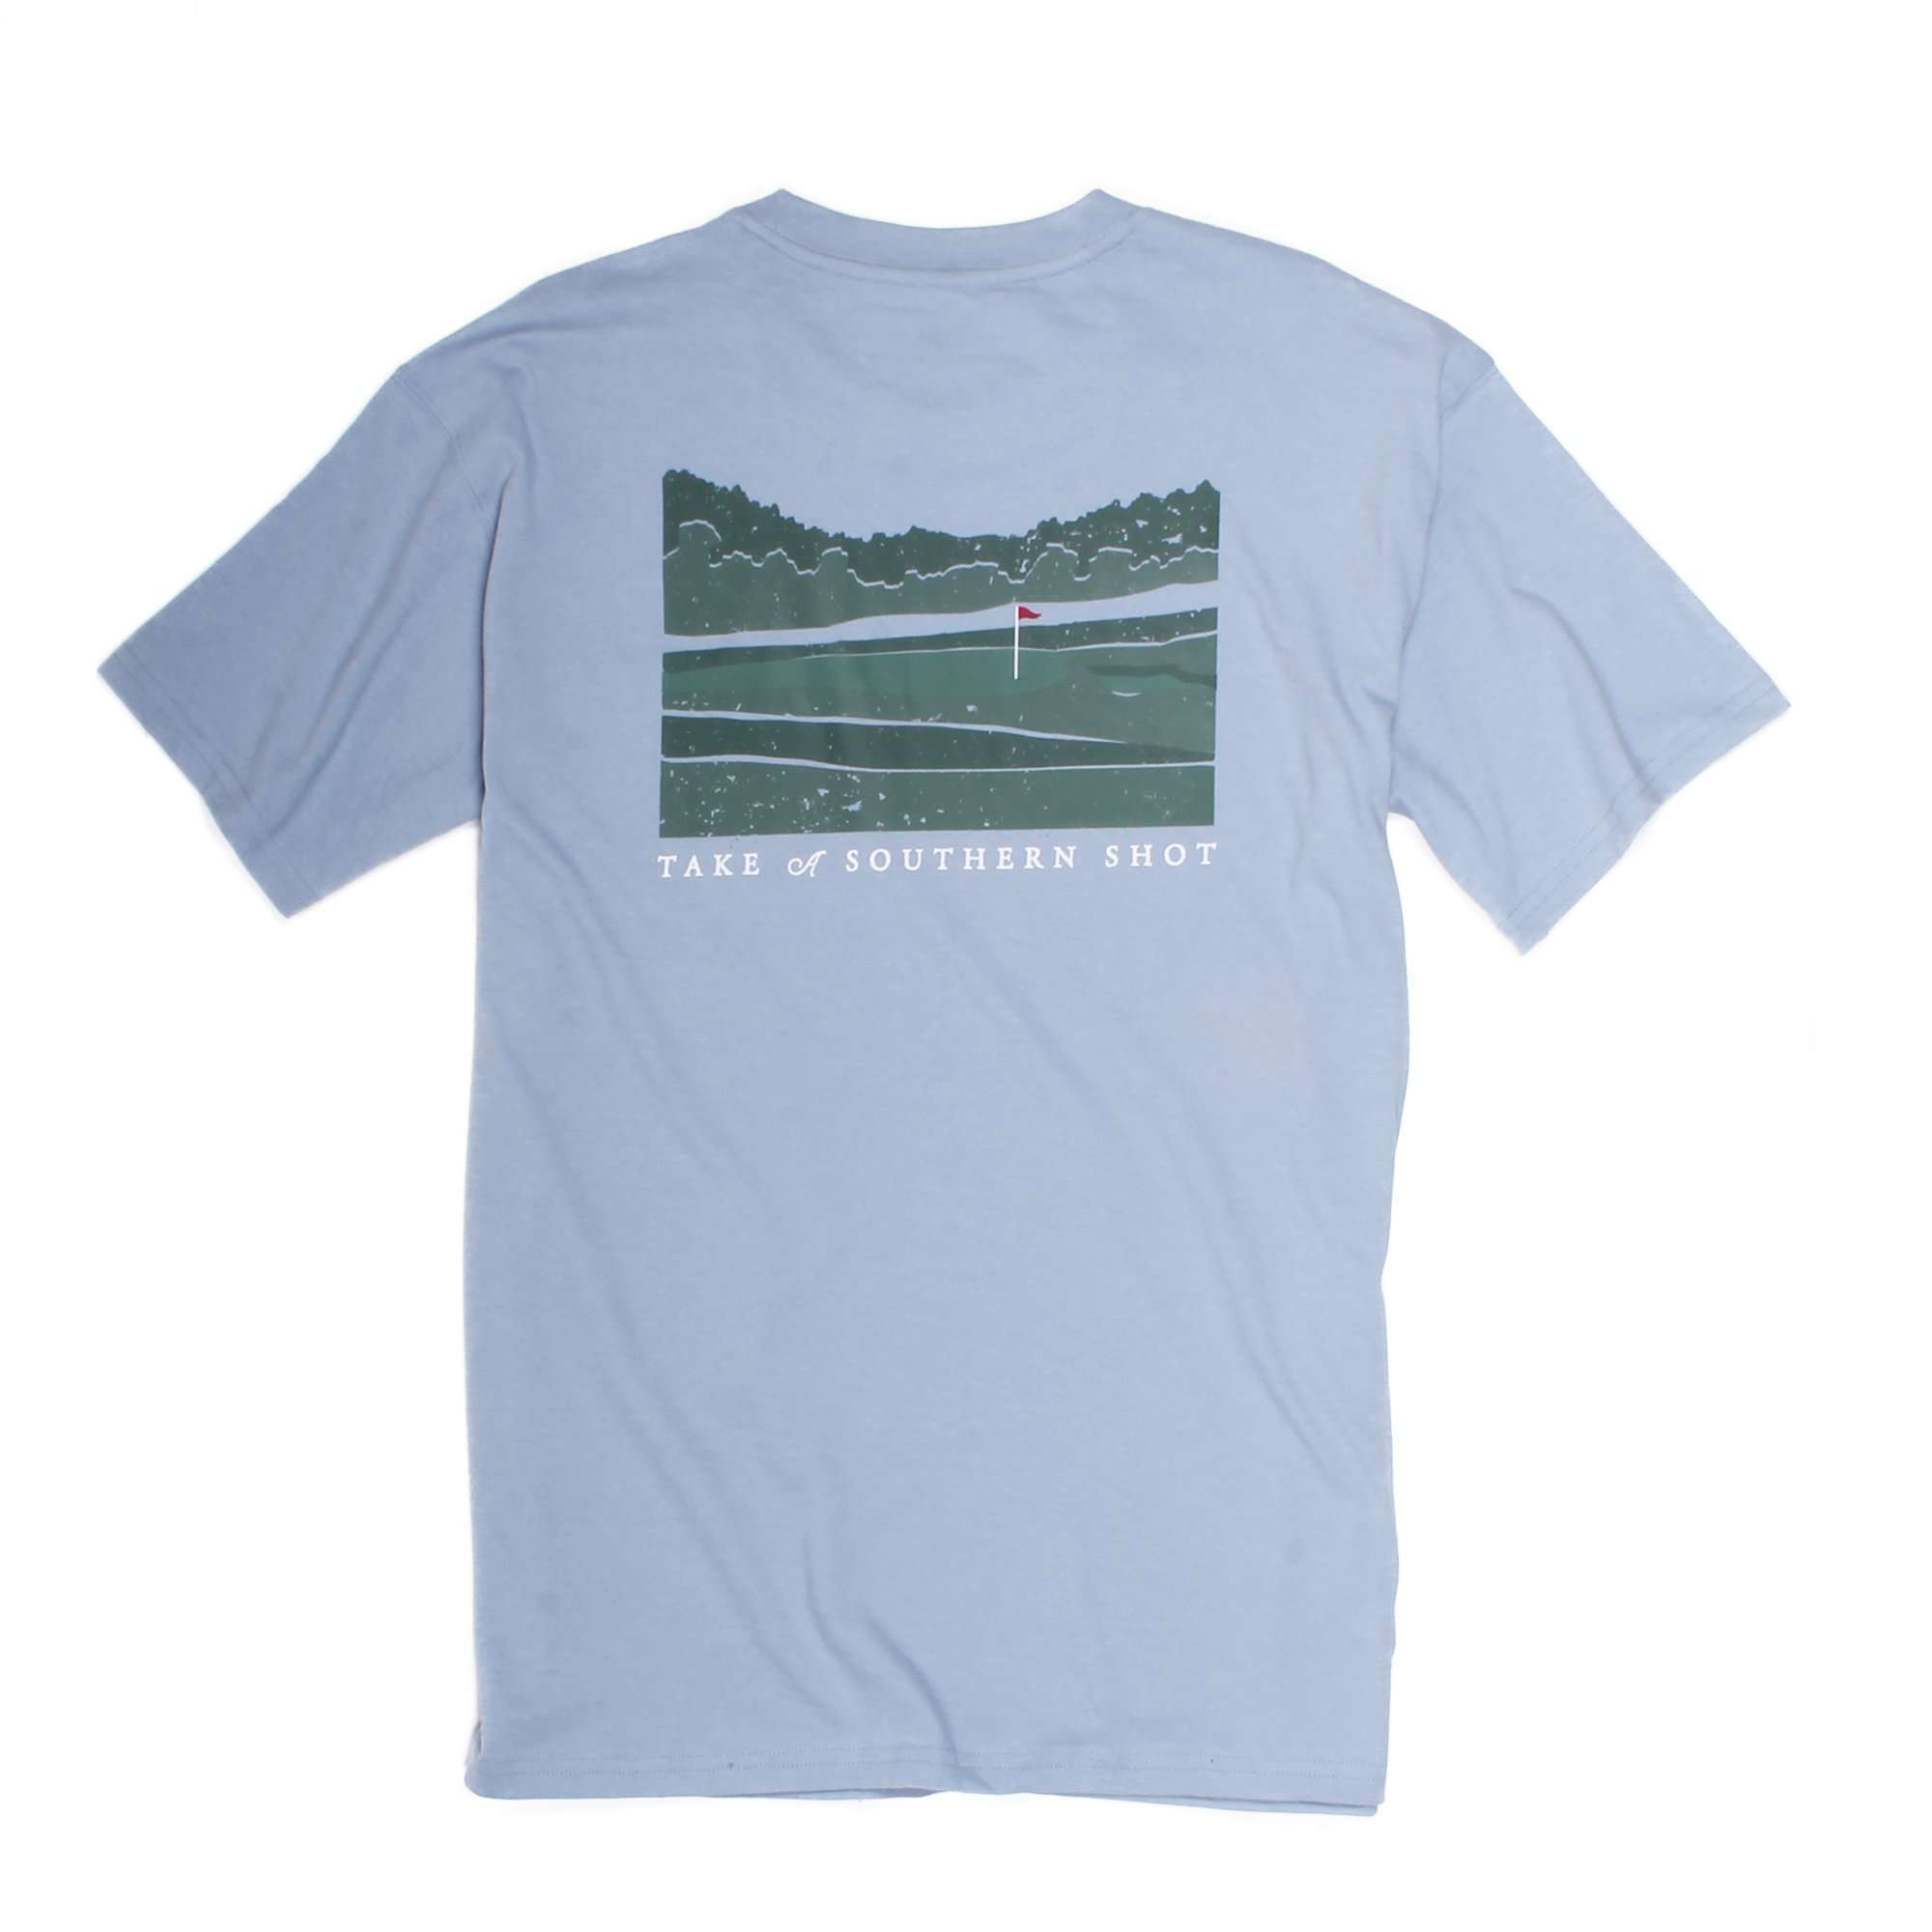 Take A Southern Shot: Dust Blue Short Sleeve